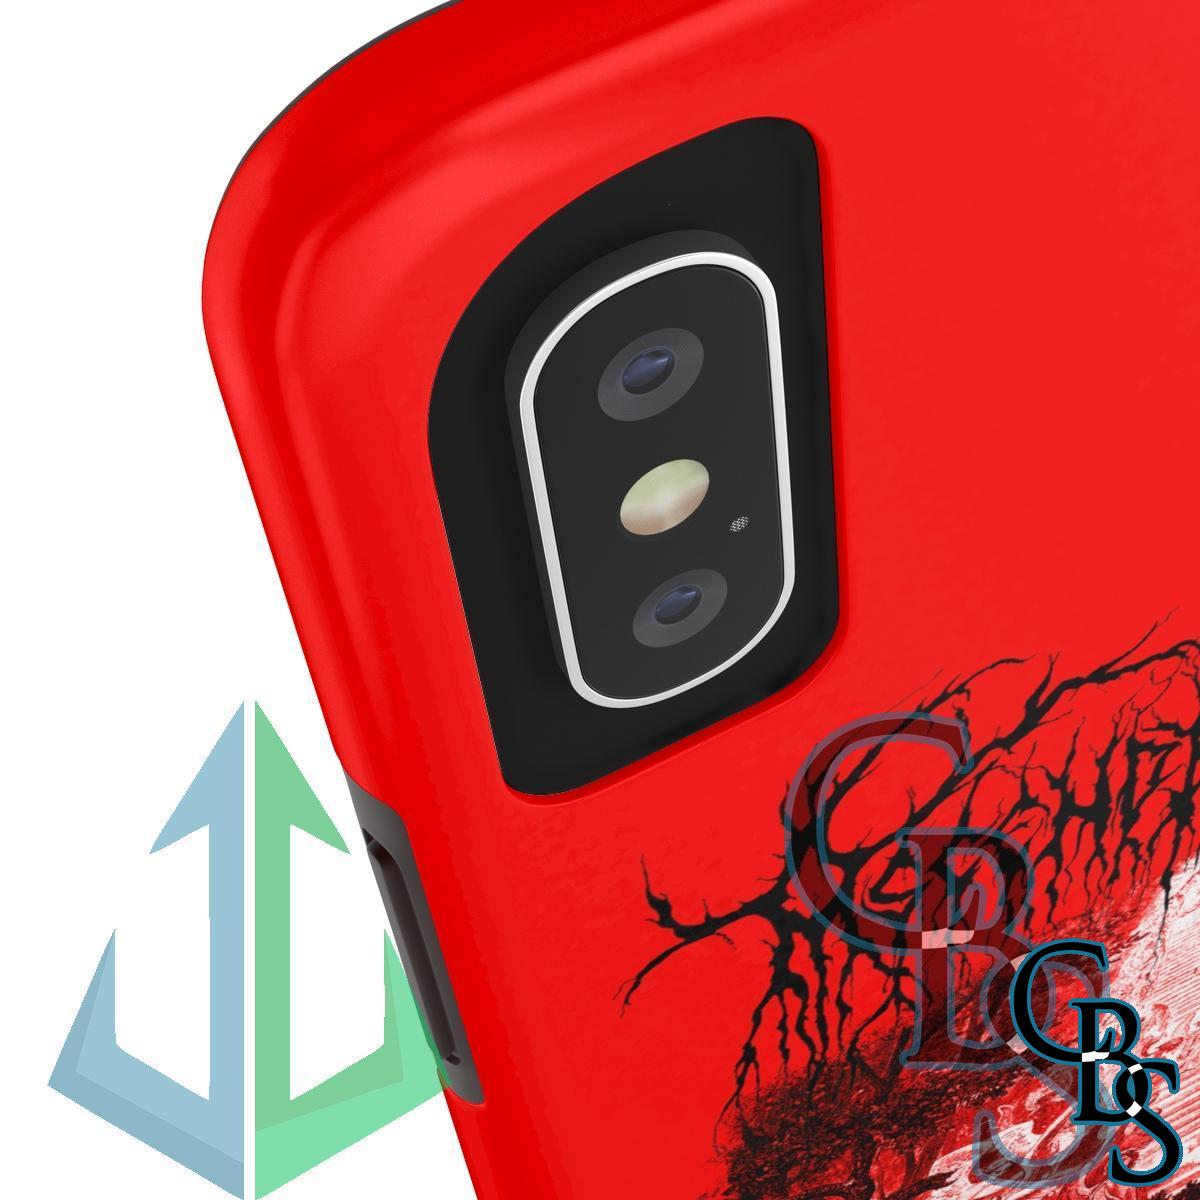 Ascending King – Jacob (Red) iPhone Cases (iPhone 7/7 Plus, iPhone 8/8 Plus, iPhone X, XS, XR, iPhone 11, 11 Pro, 11 Pro Max)